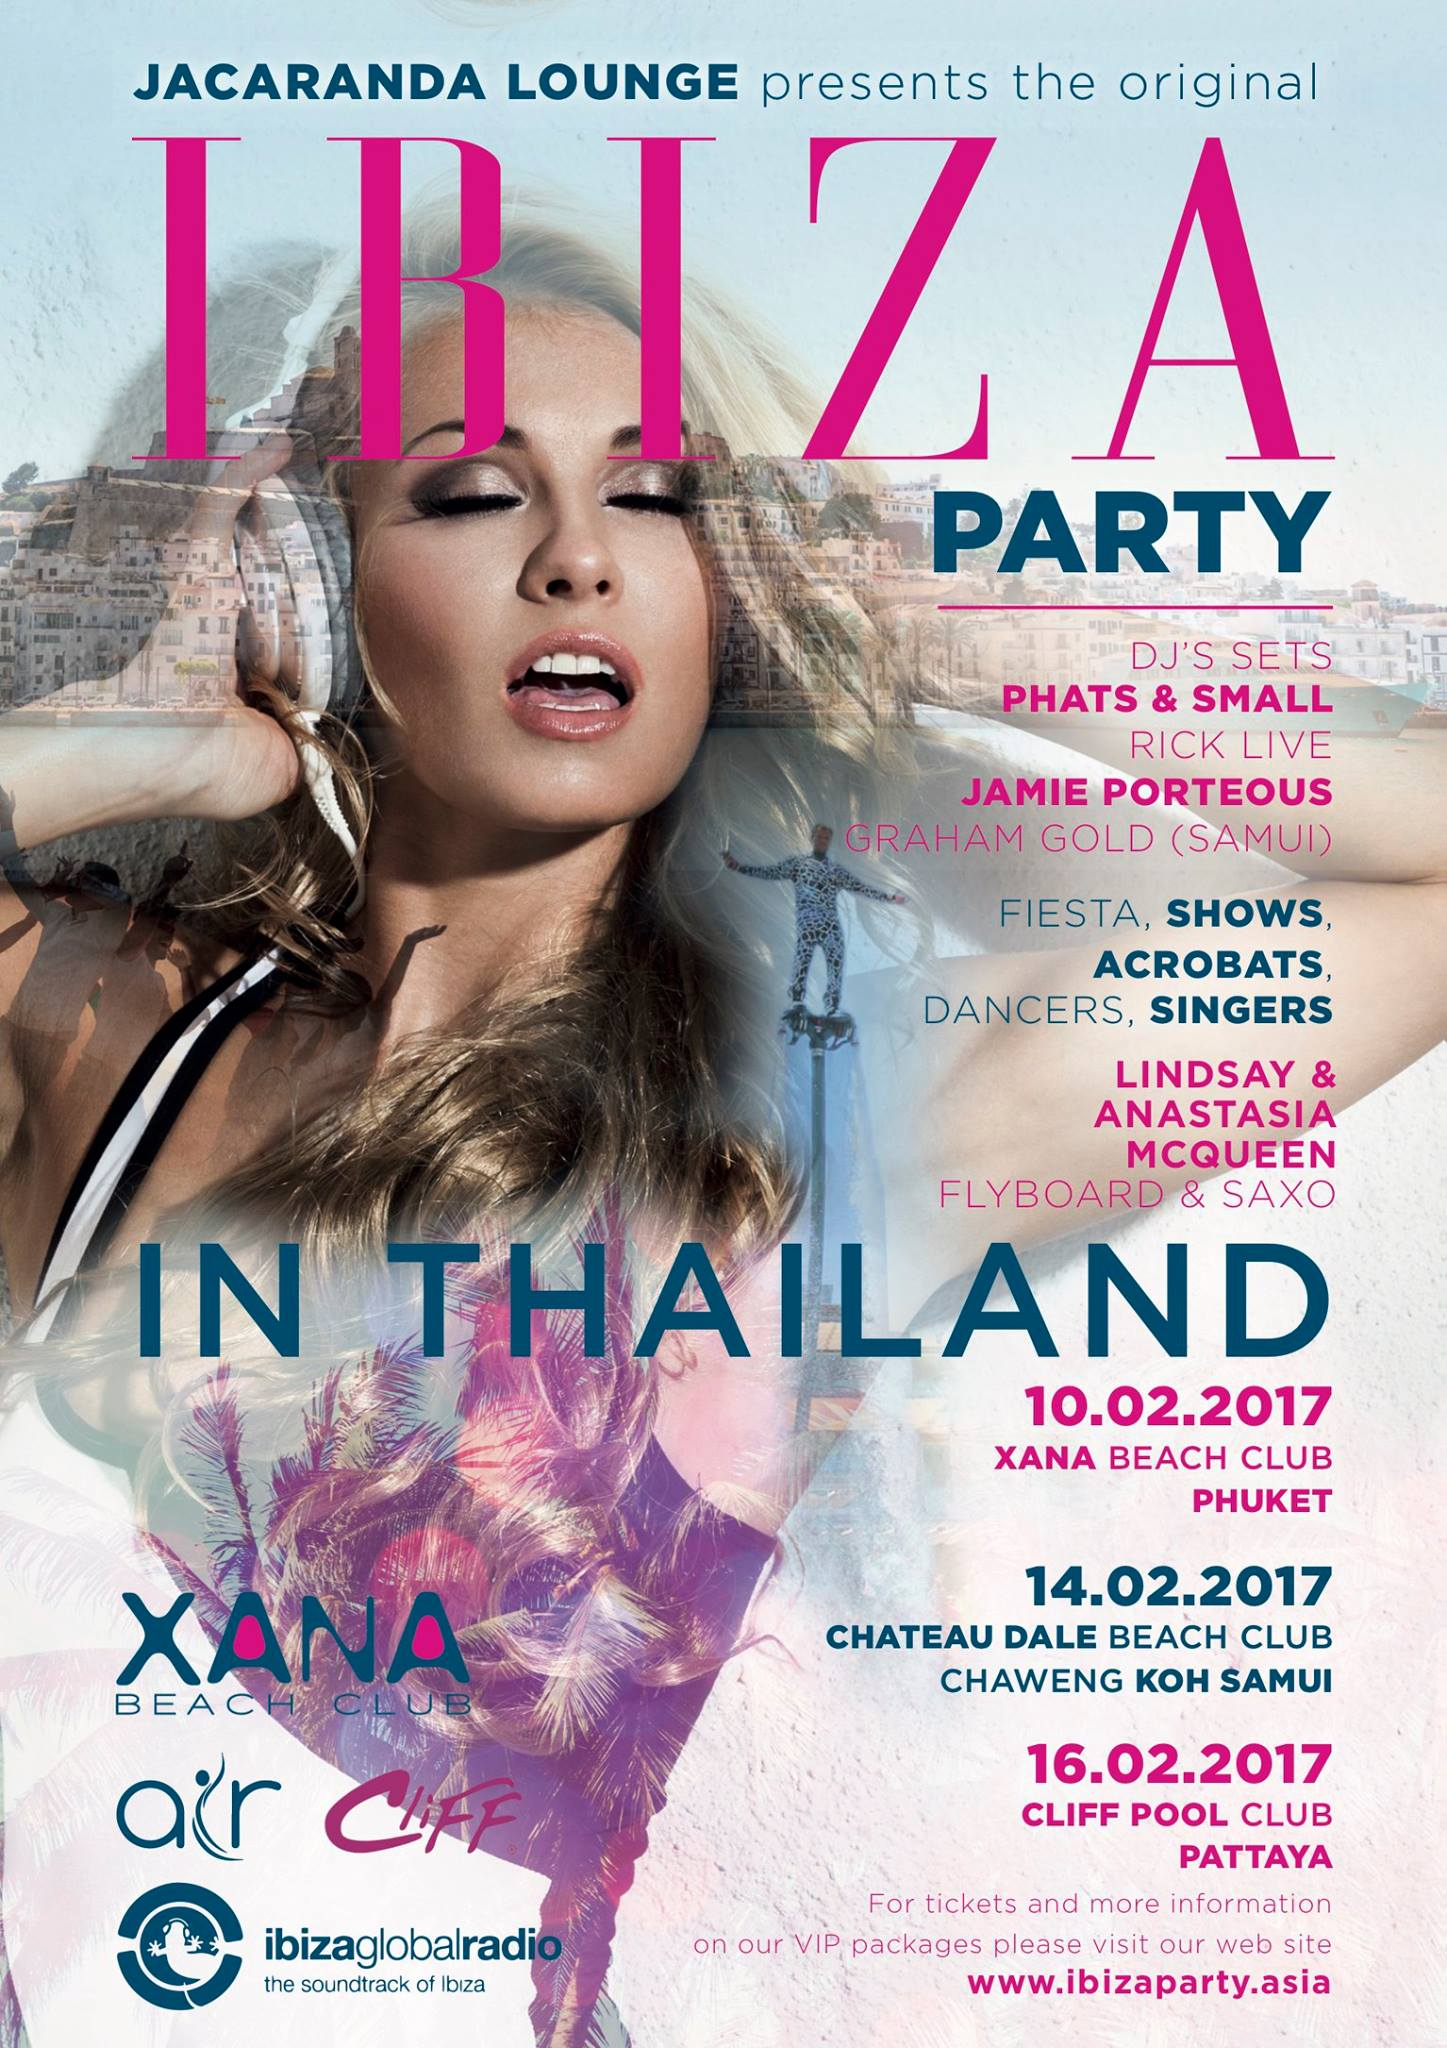 IBIZA PARTY ON KOH SAMUI 14th Feb. Chateaux Dale / Combo Beach Club Hotel – Chaweng Beach | Samui Times